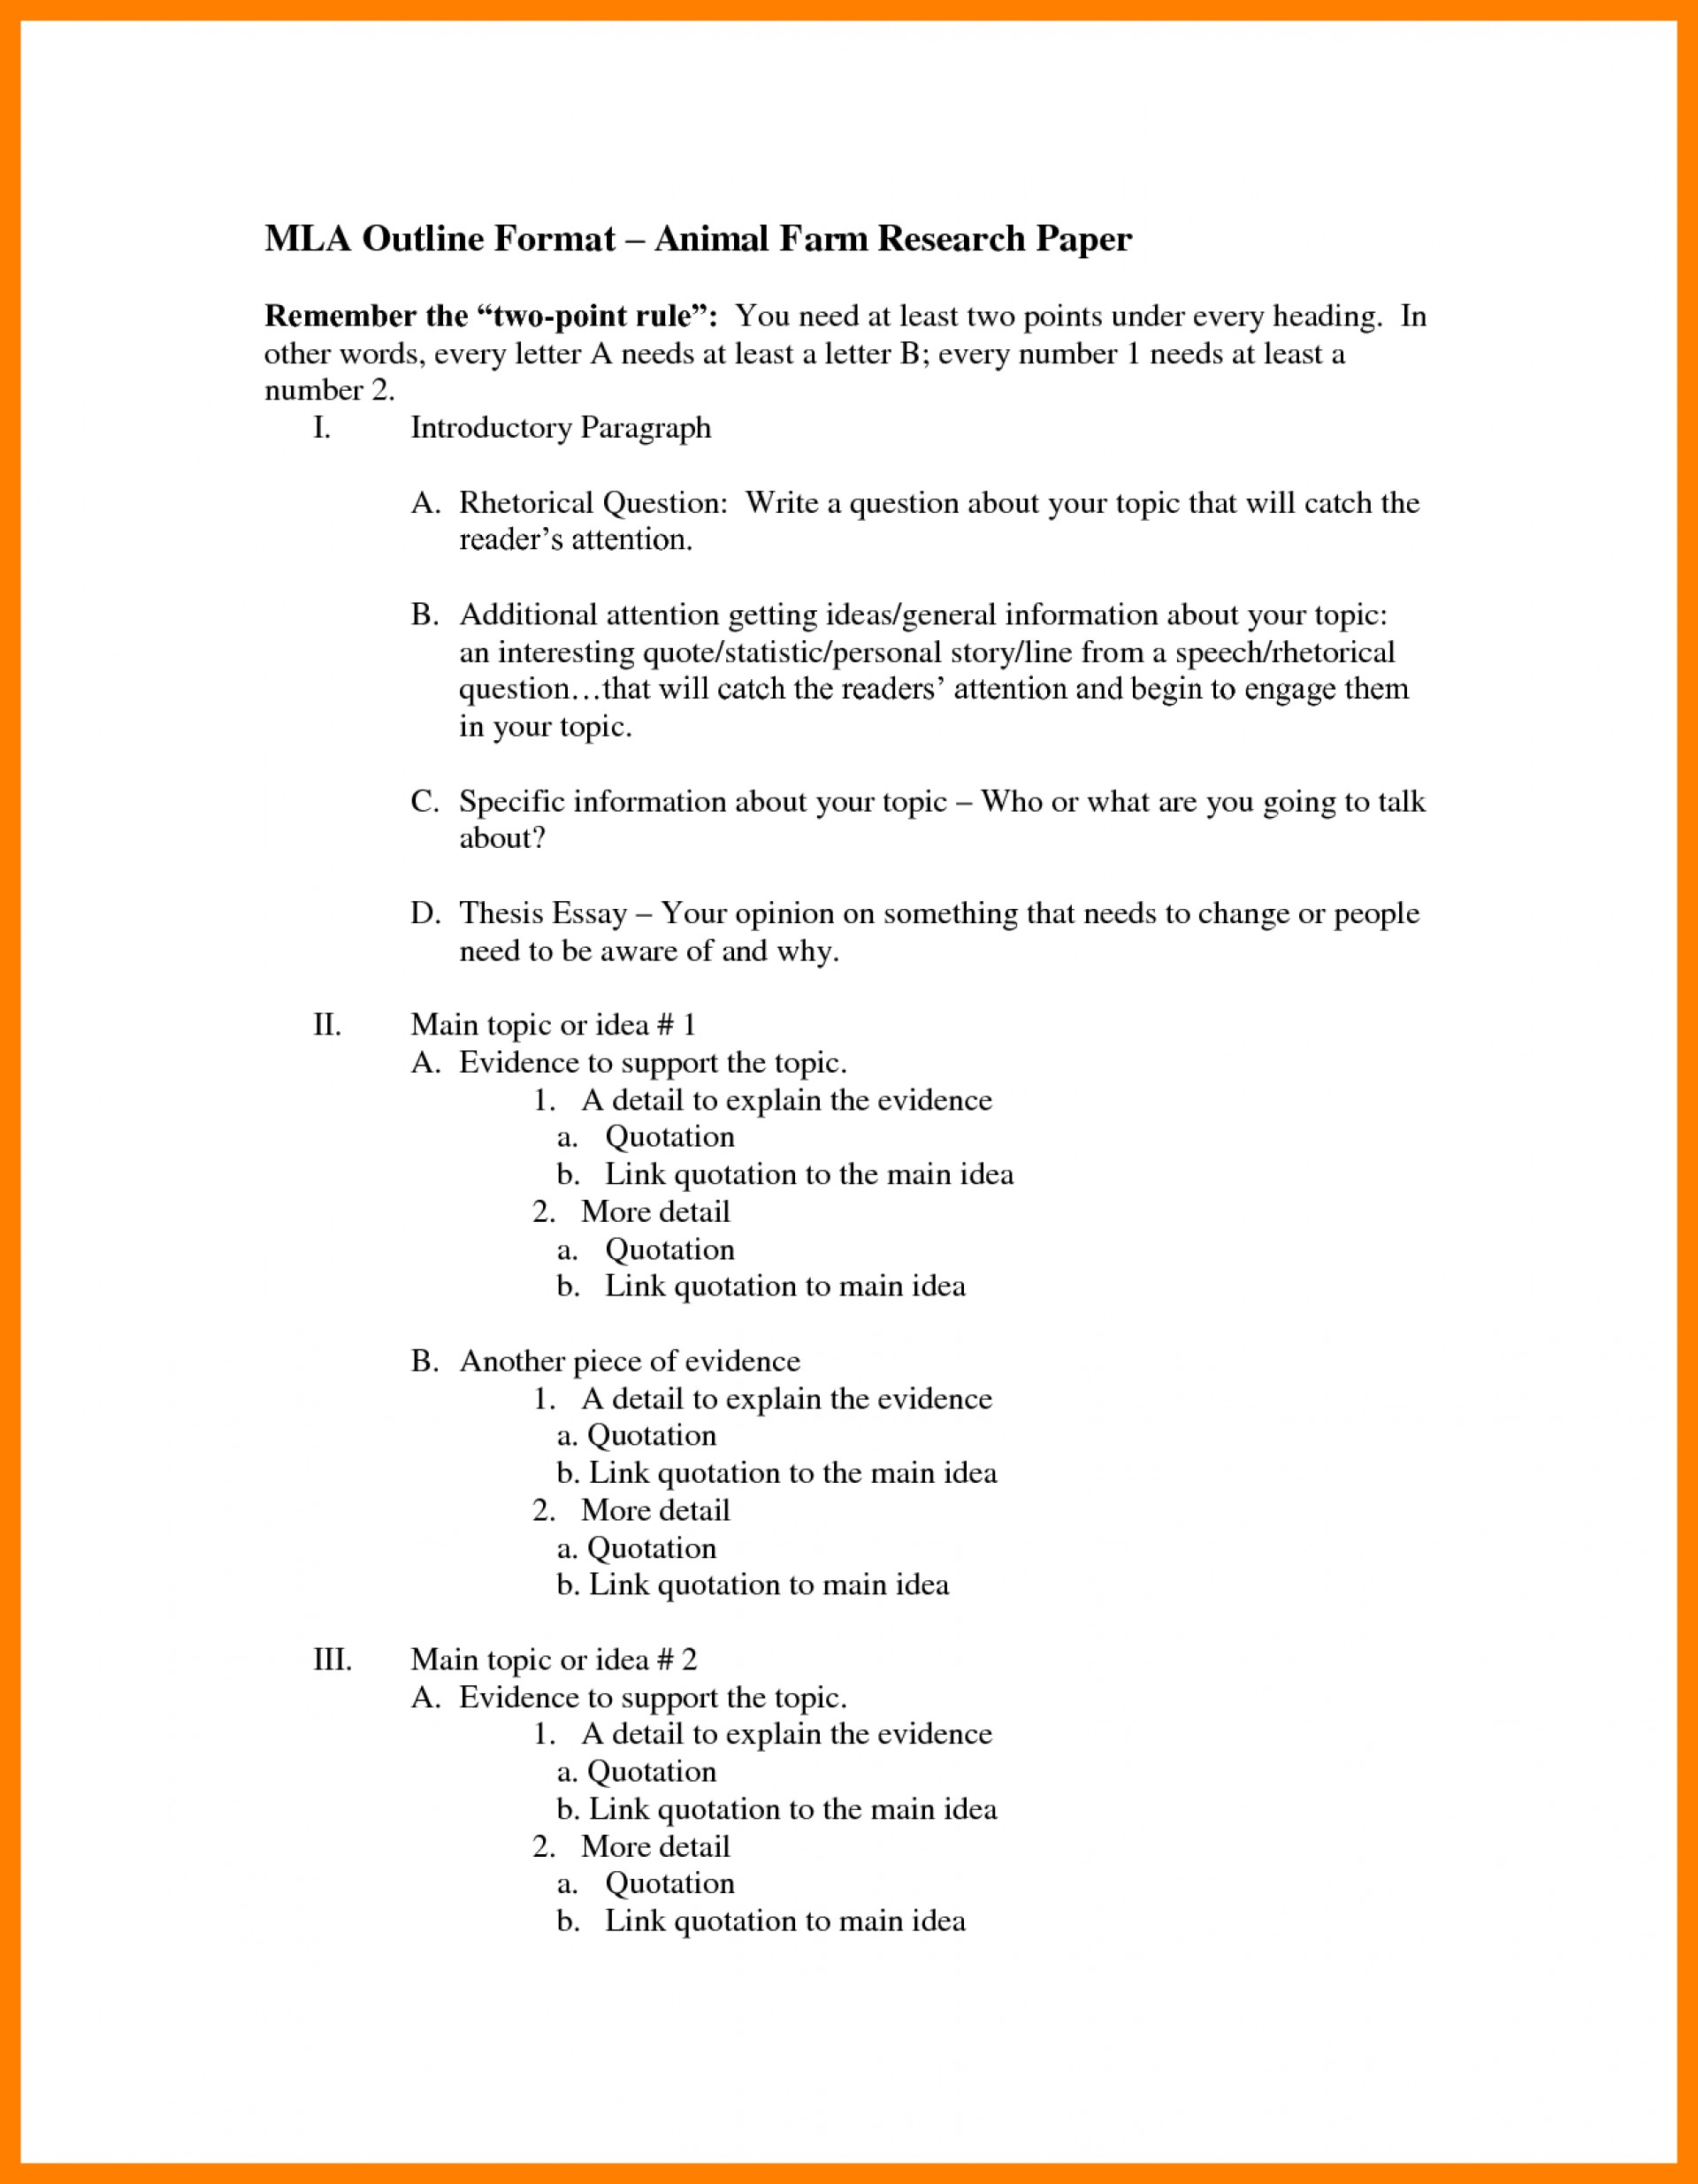 001 Outline Templatech Paper Mla Bunch Ideas Of Example Brilliant Impressive Template Research Blank Format 1920